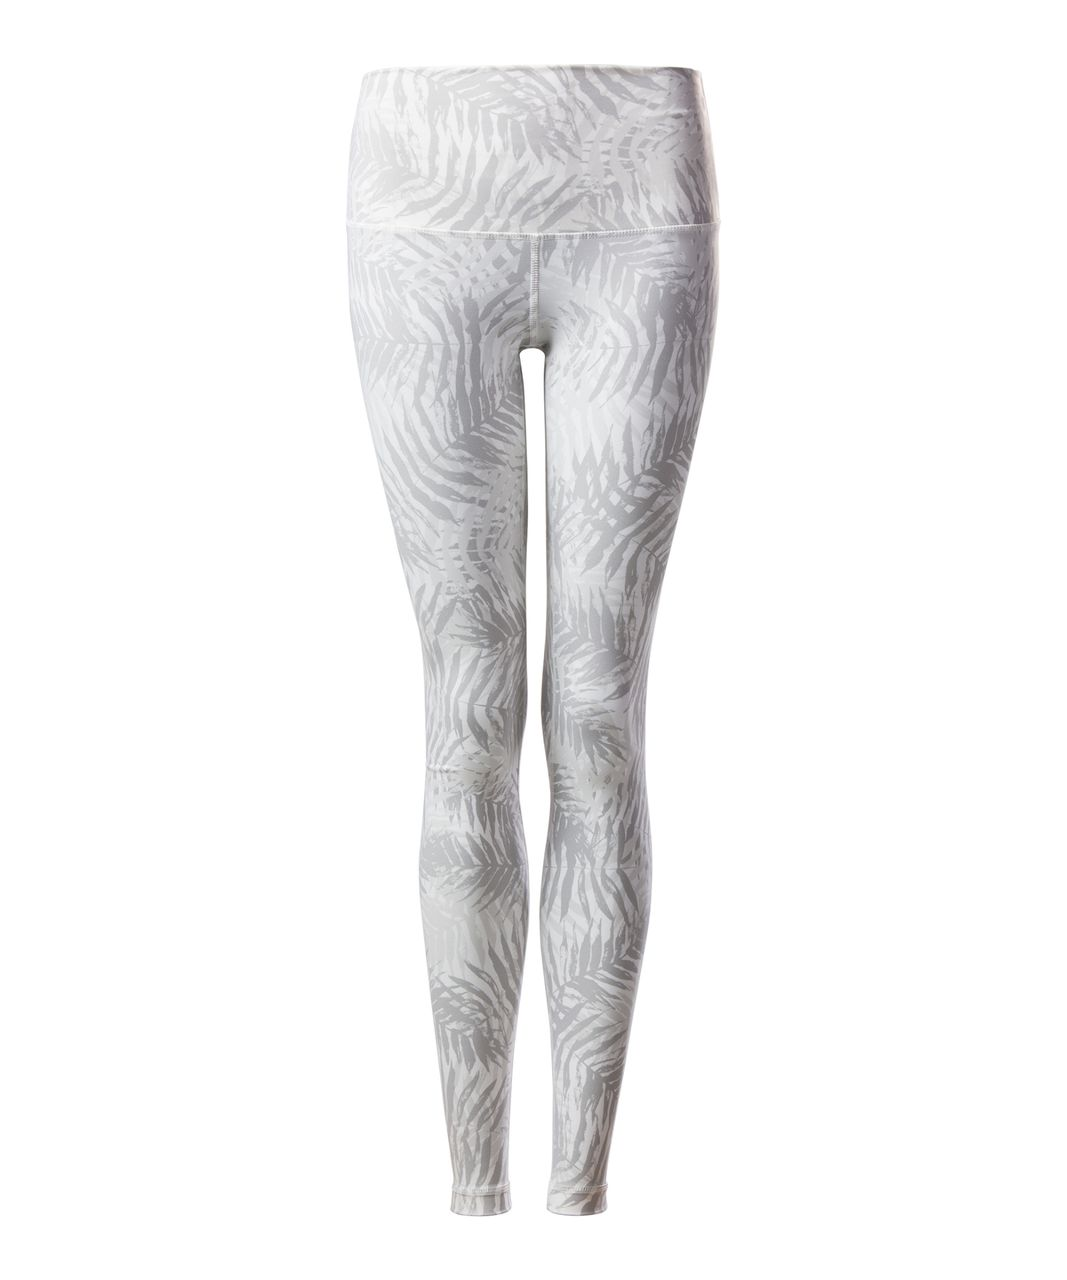 Lululemon Wunder Under Pant (Hi-Rise) (Full-On Luxtreme) - Palm Camo White Nimbus